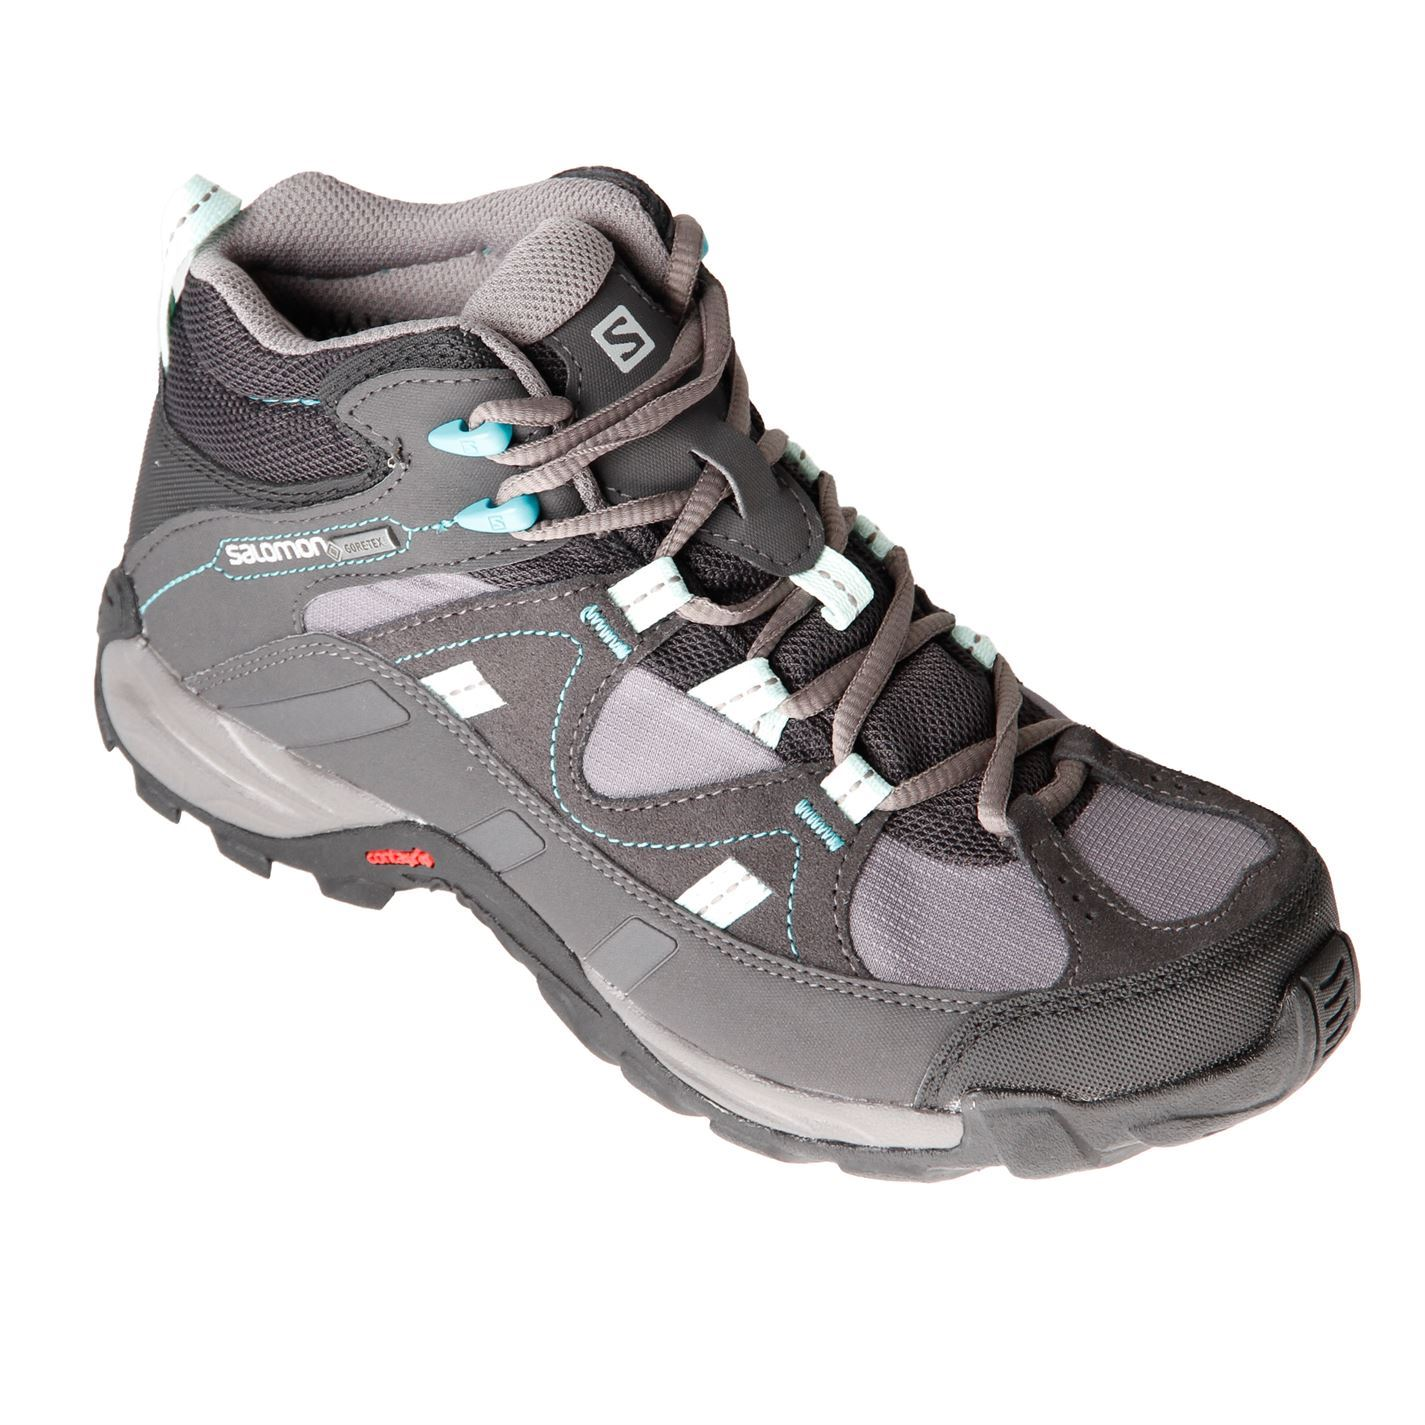 Beautiful We Have Chosen These Boots To Offer Good Wear, Grip And Allround Comfort In Different Terrains For Summer Walking Salomon Womens X Ultra Mid GTX Salomon Summer Walking Boots Are Some Of The Most Comfortable Boots